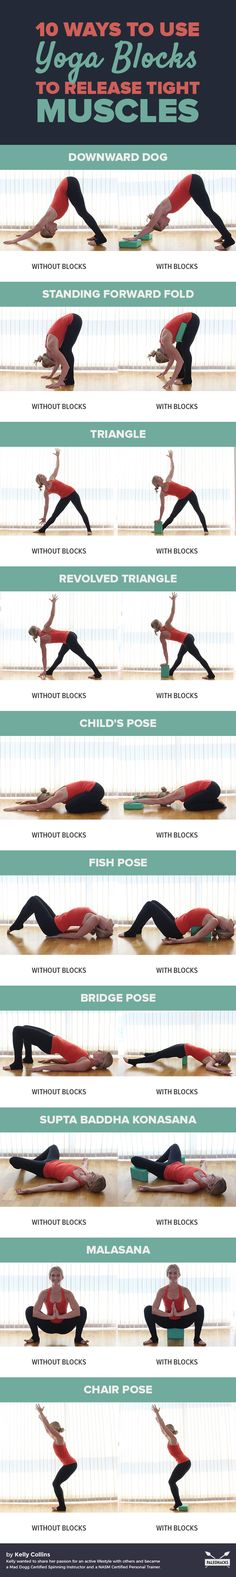 Whether you're new to yoga or trying to ease your way back in, blocks are great tools to use to help you get into poses safely. Read the full article here: http://paleo.co/yogablocksmuscles